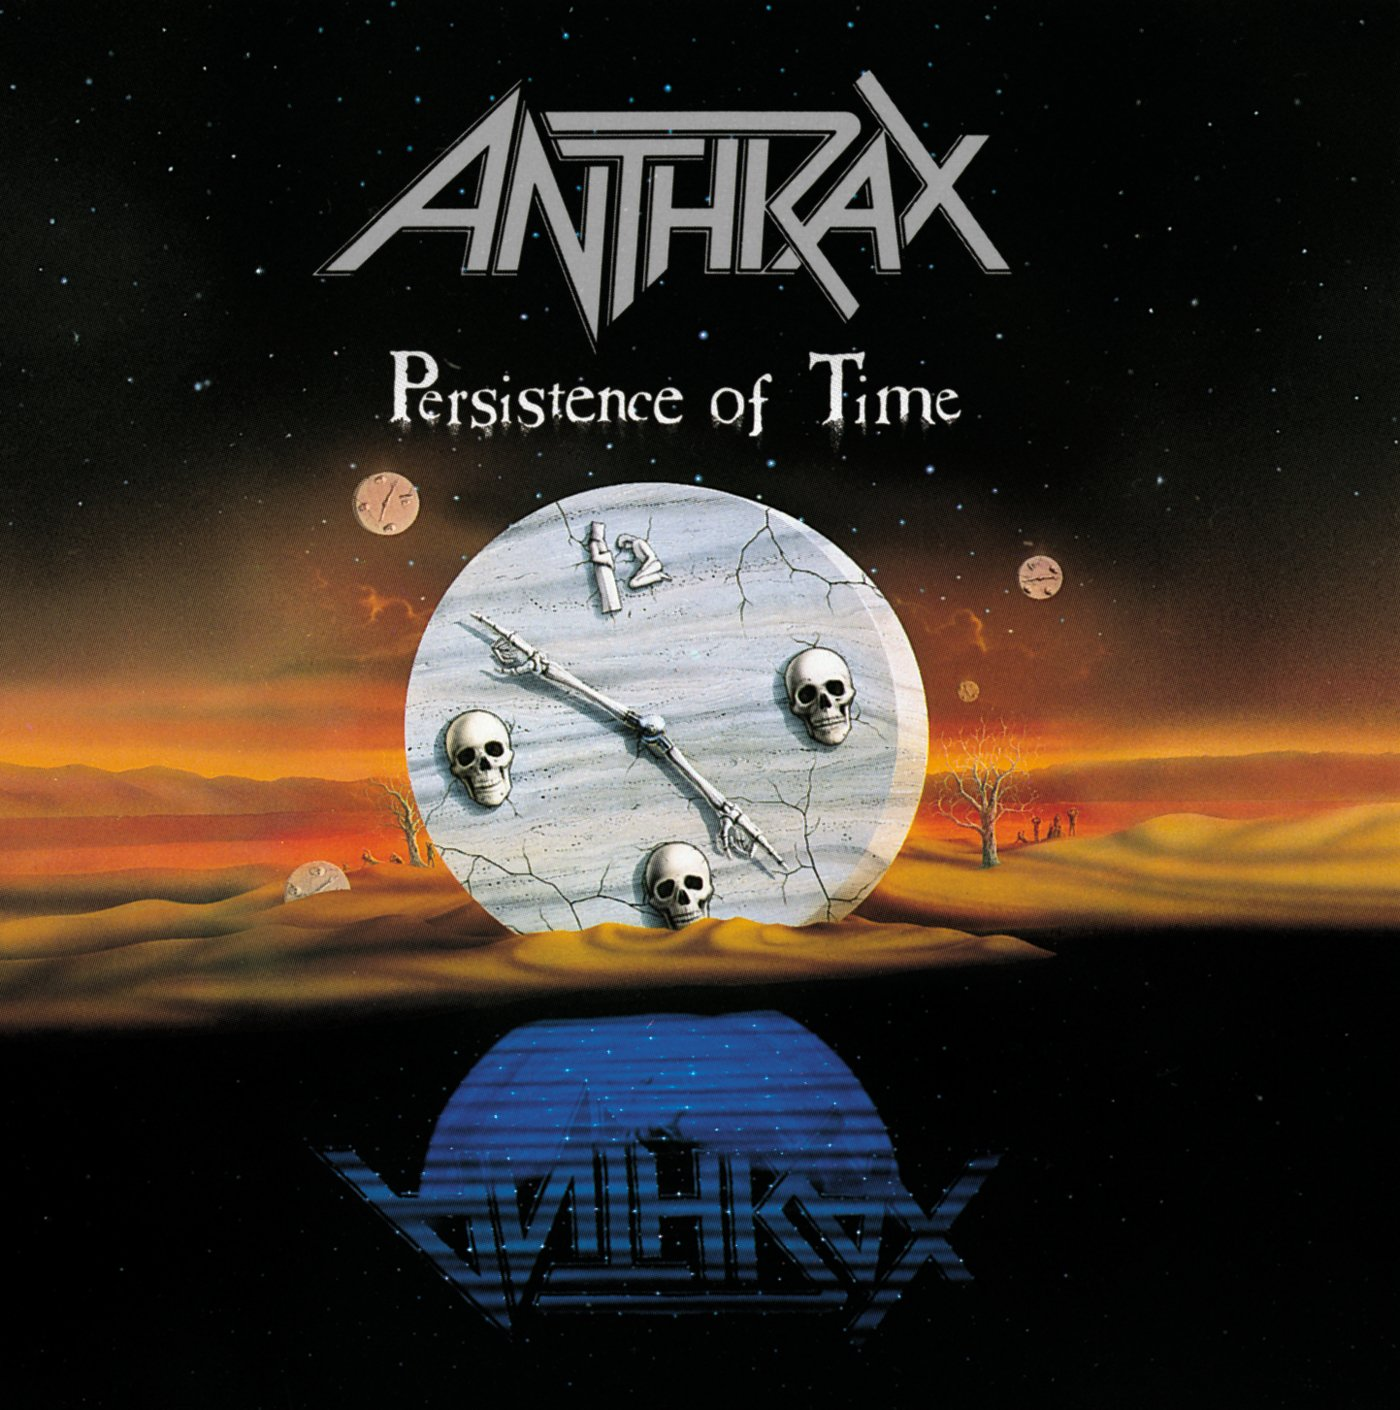 Anthax-Persistence of Time- Queensrche-Empire 1990 online